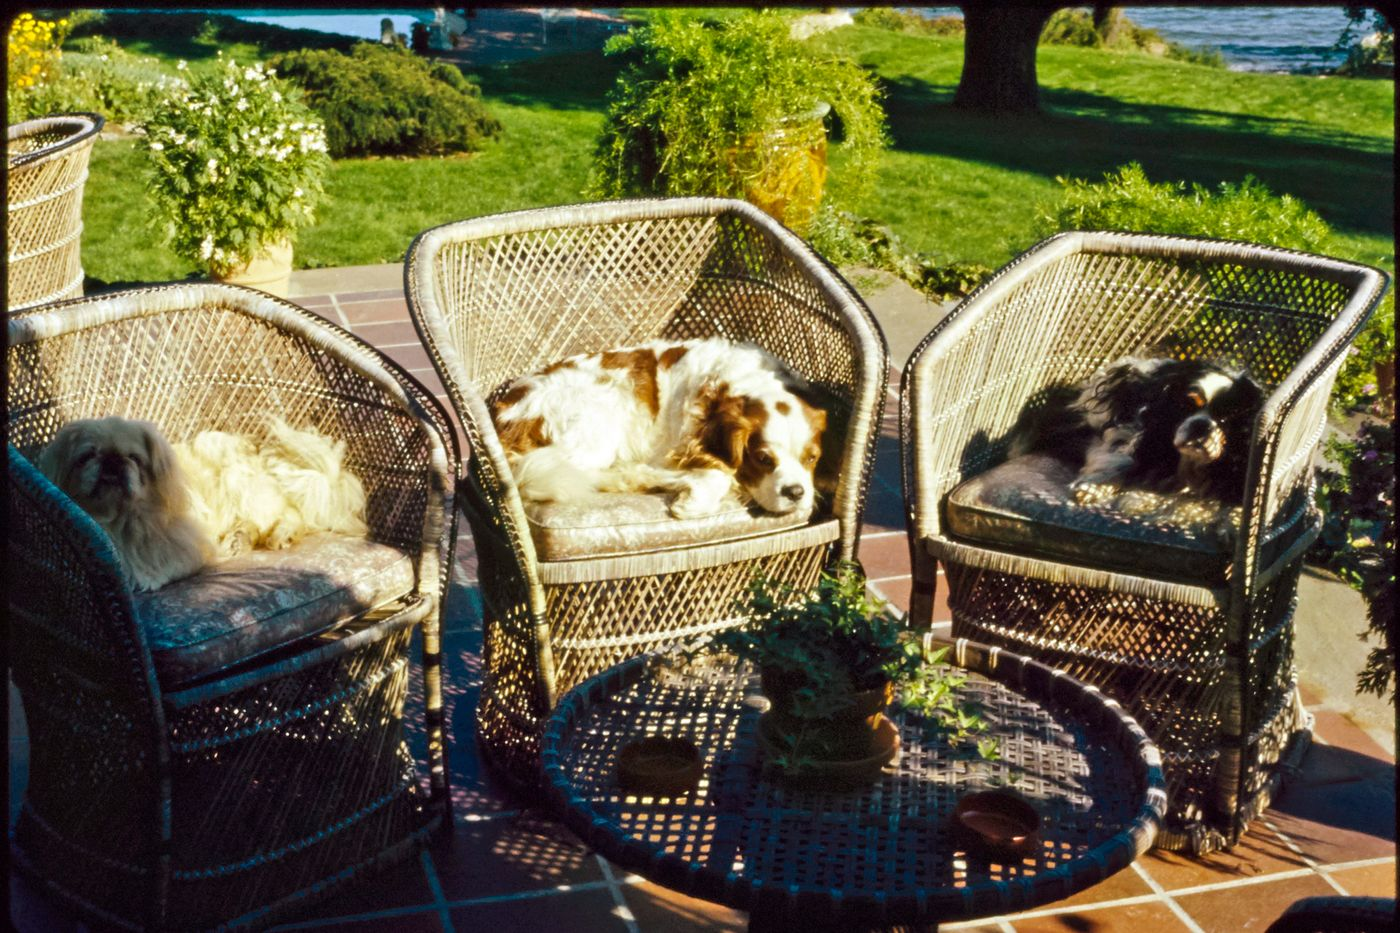 Dog on an outdoor chair.